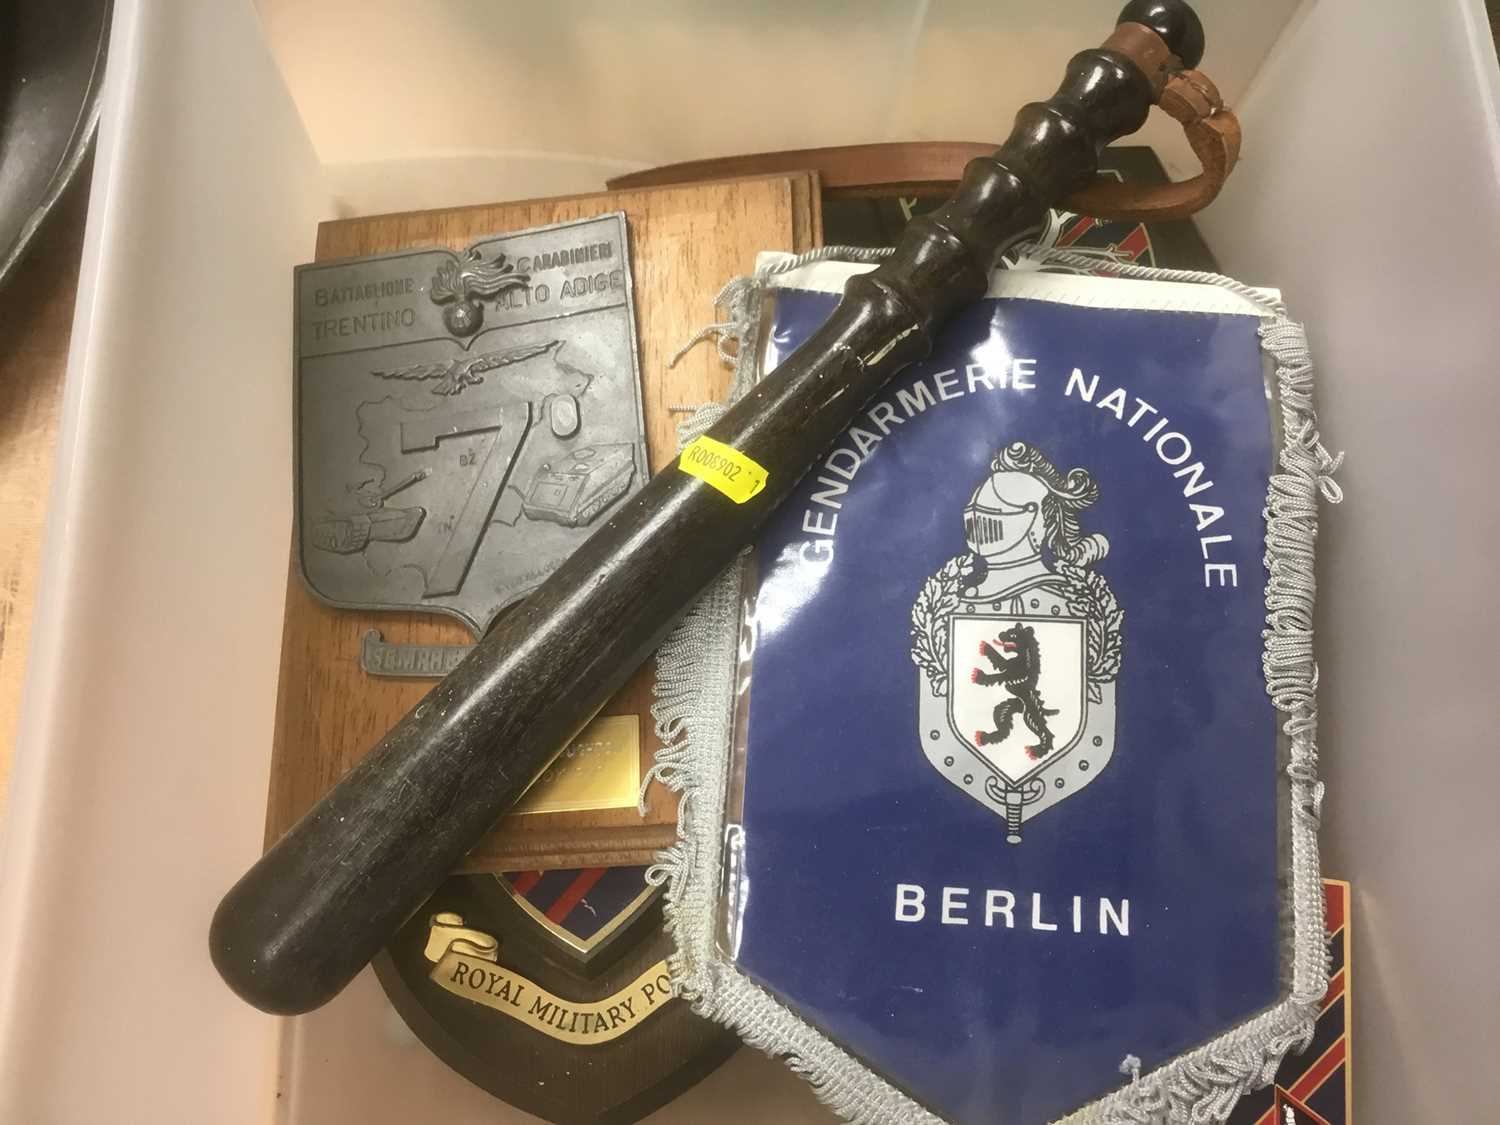 Vintage truncheon together with a group of regimental crests / plaques